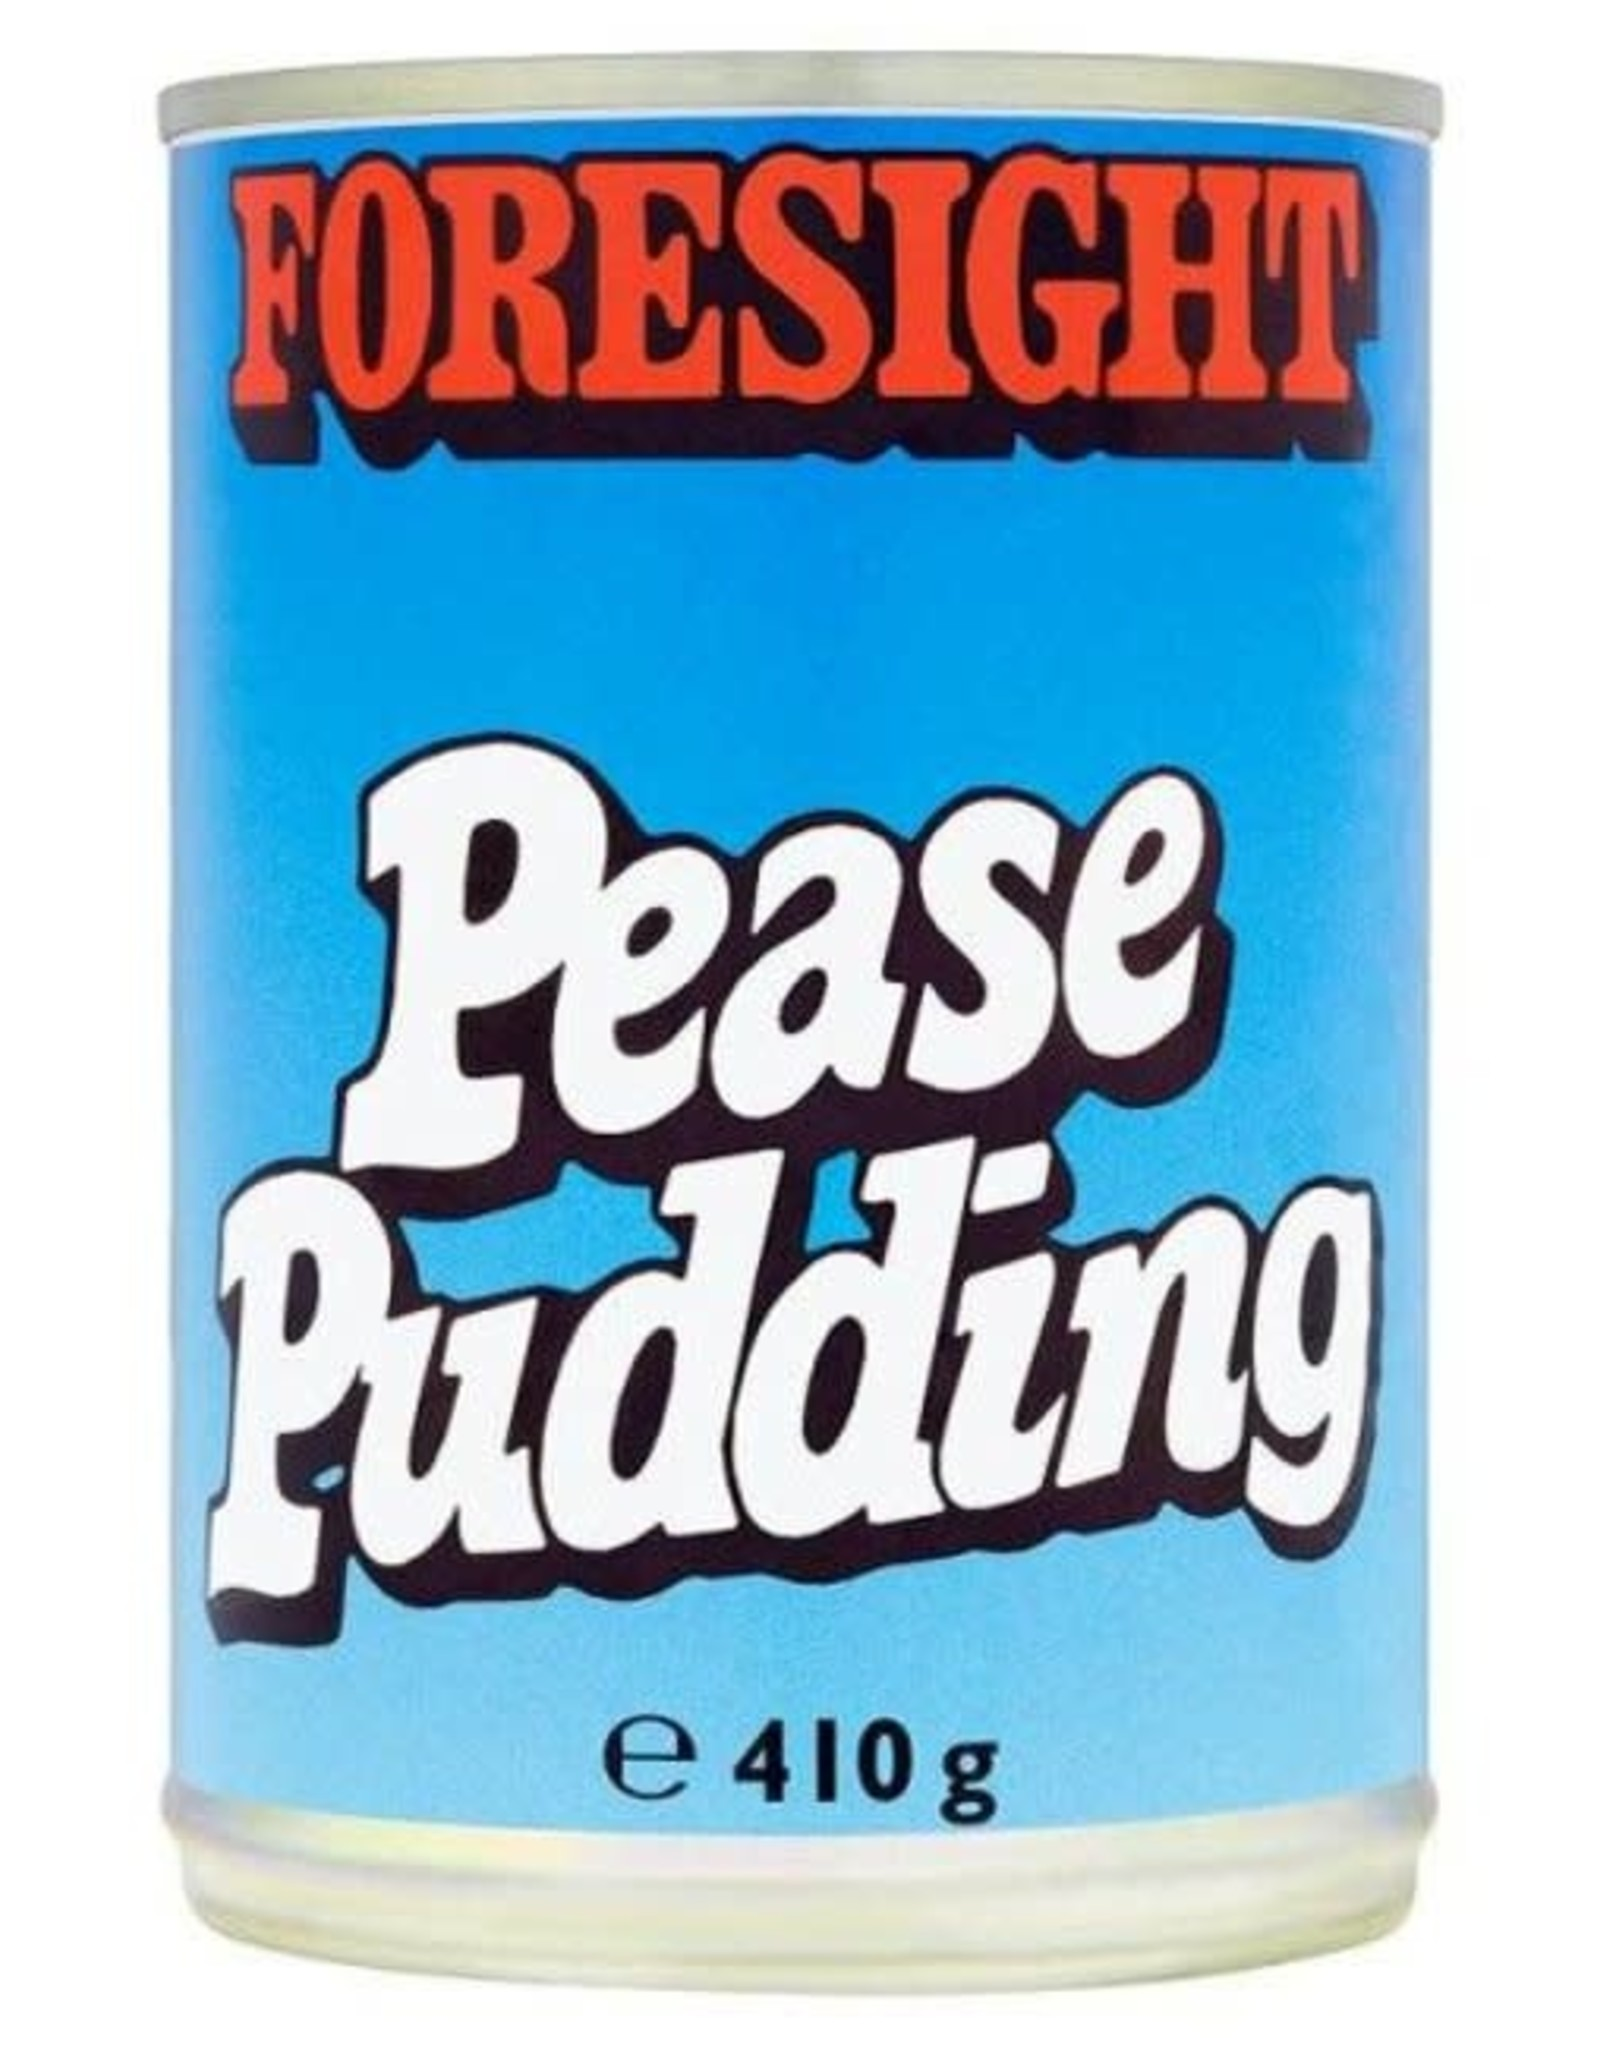 Foresight Pease Pudding 410 g